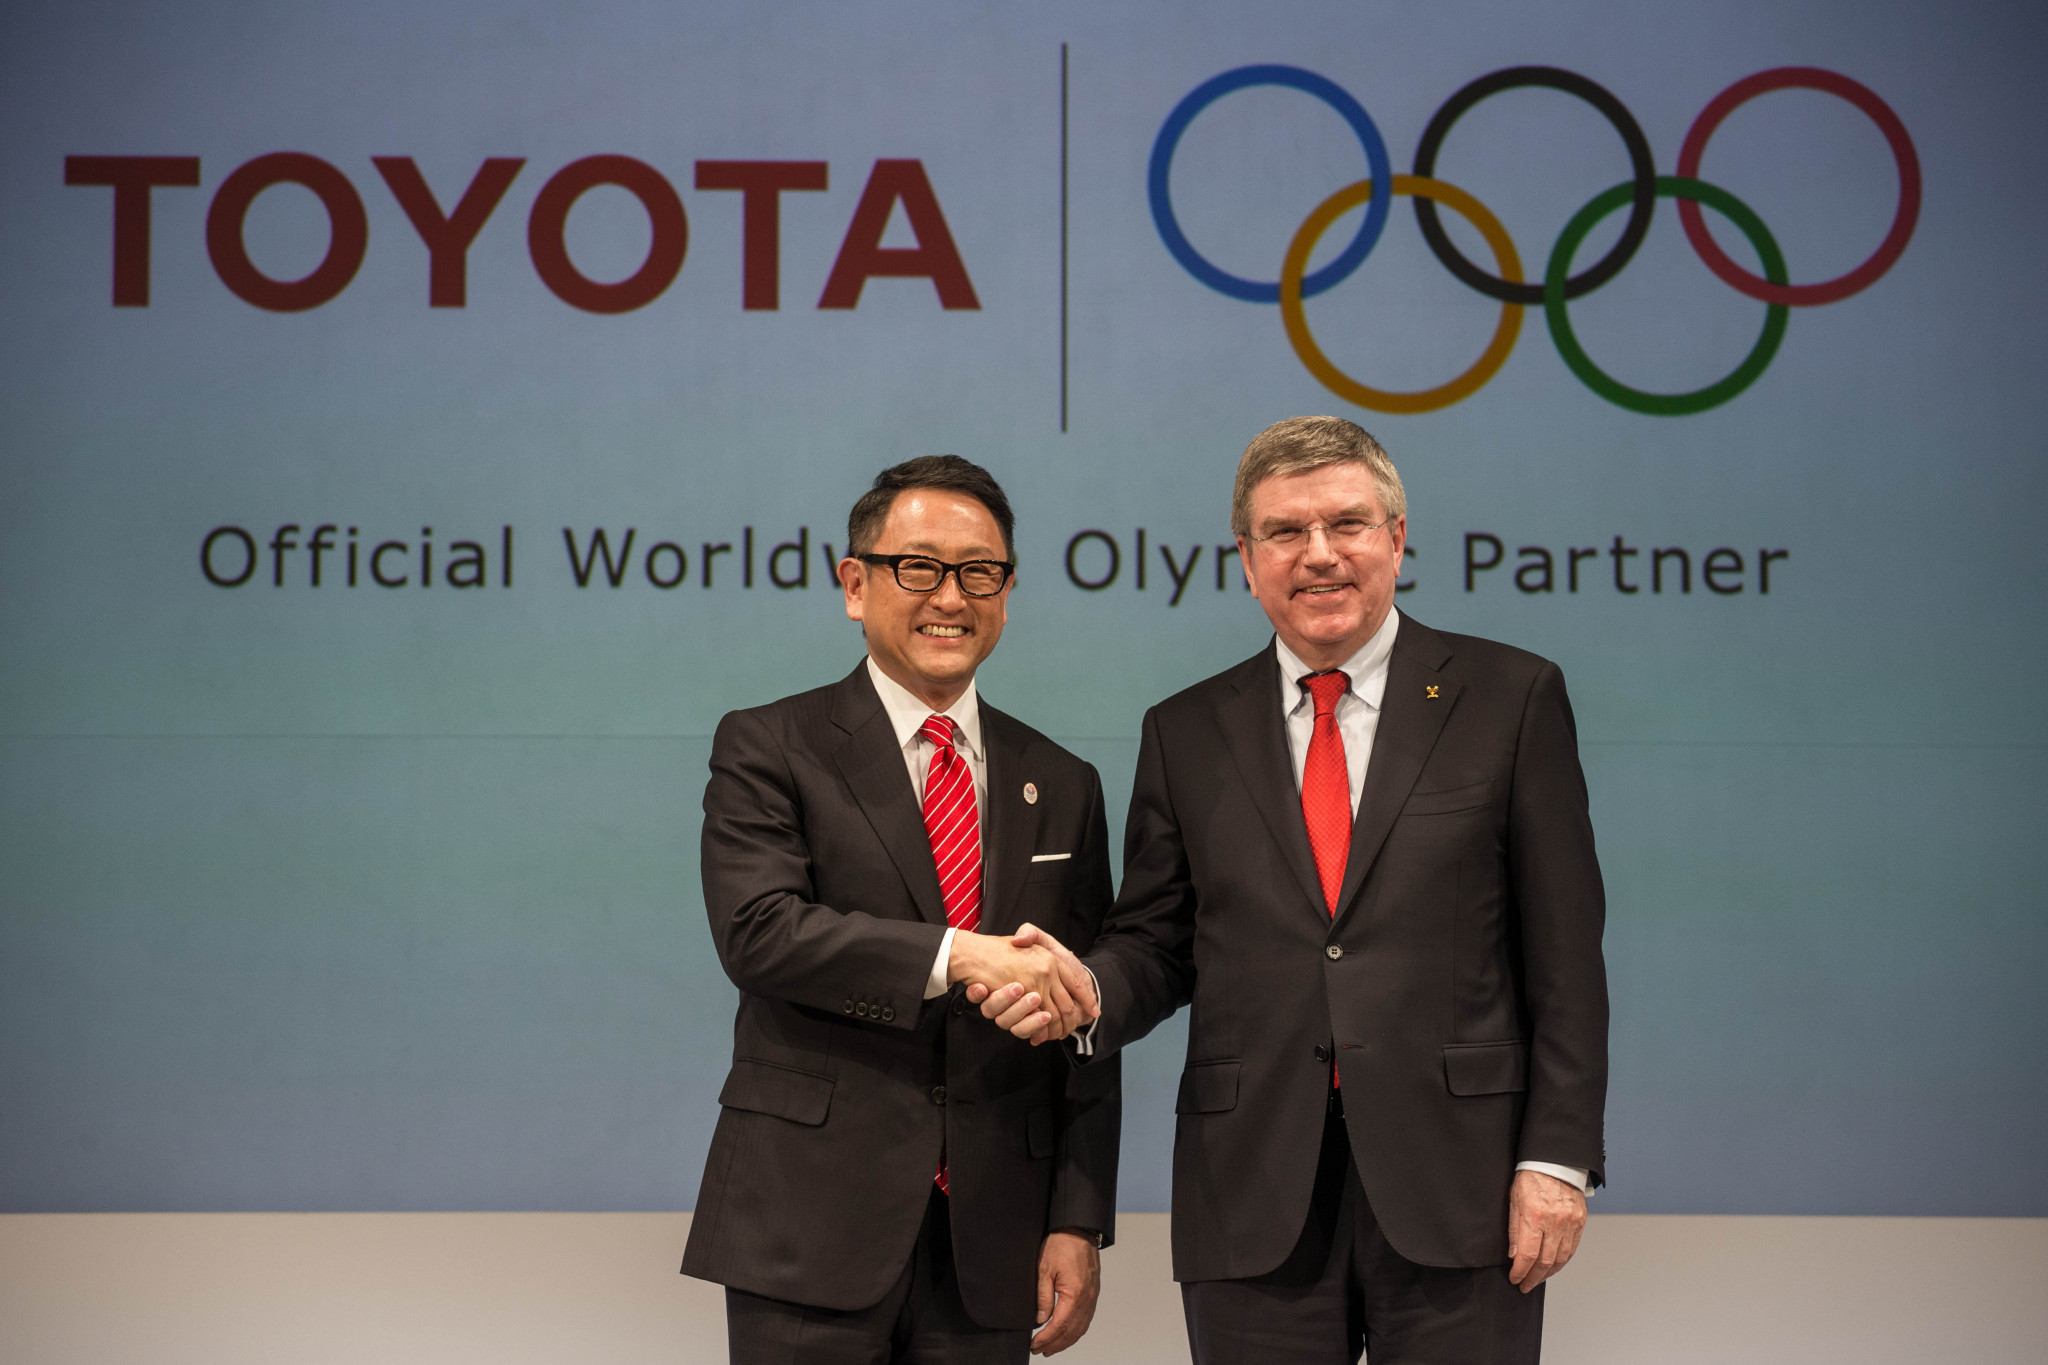 Toyota became a TOP sponsor in 2015 ©Getty Images